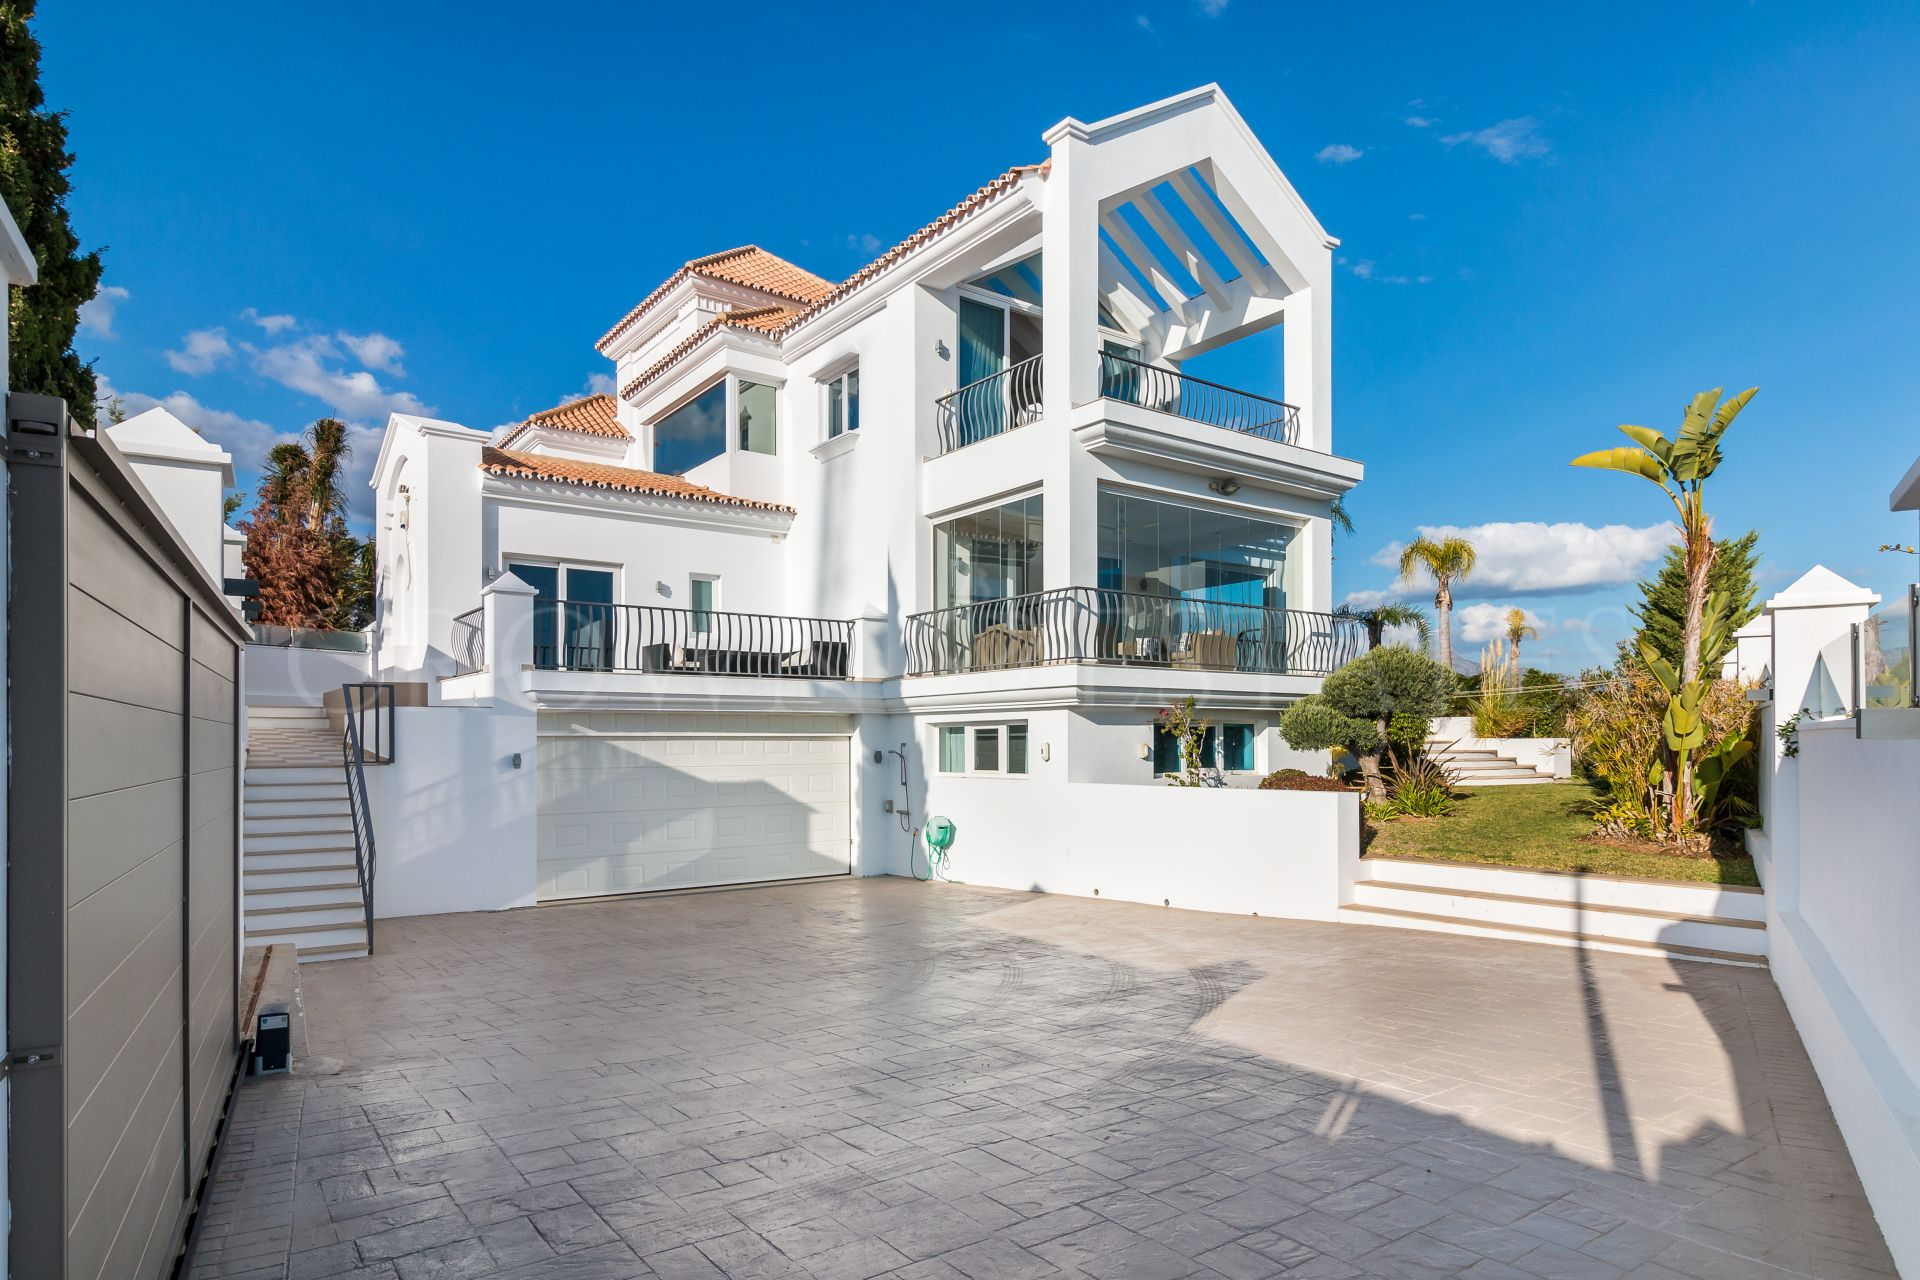 Villa for sale in Los Flamingos, Benahavis